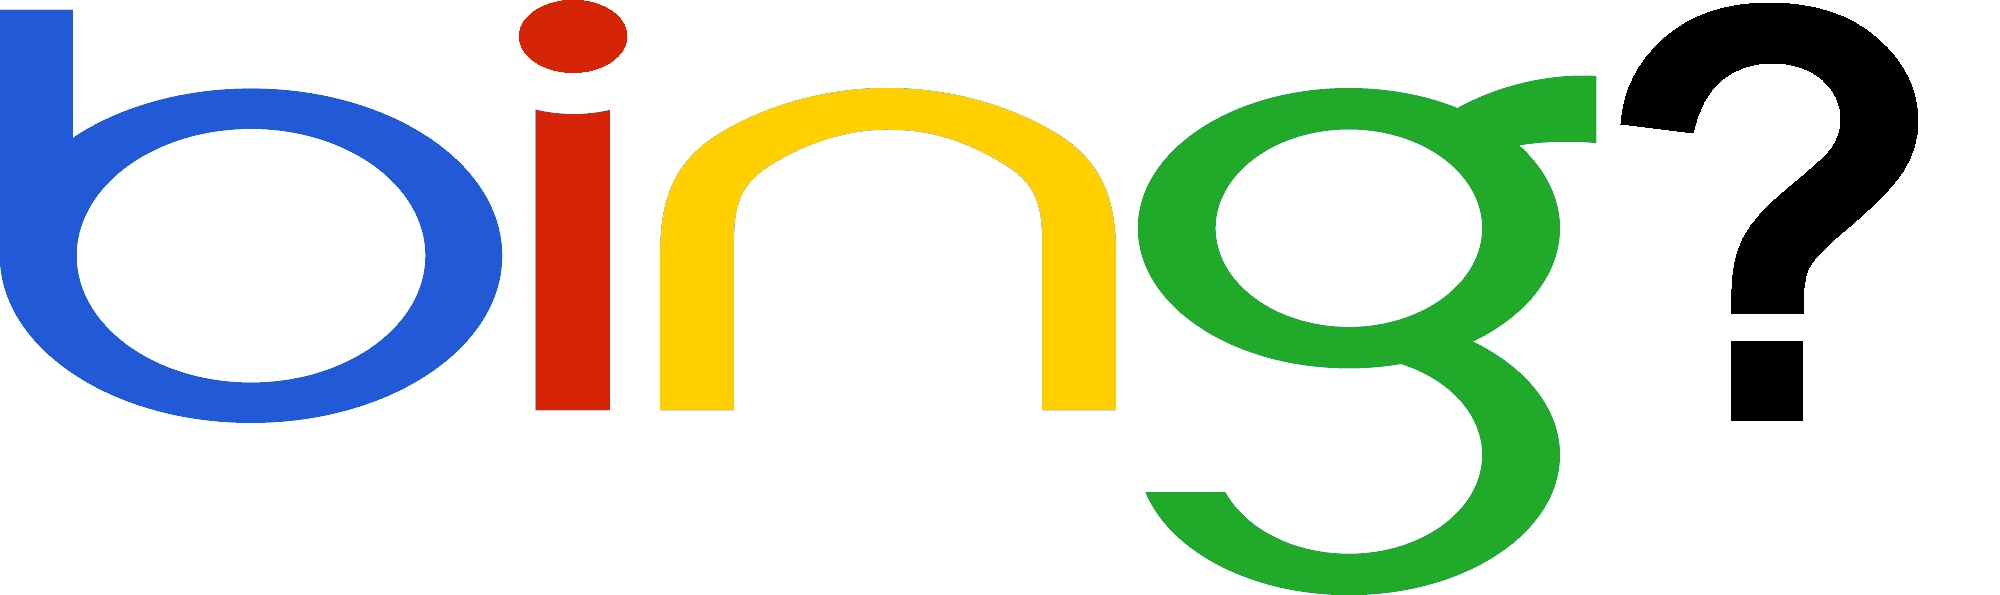 Bing doesn't use hreflang annotation – what does it use ...